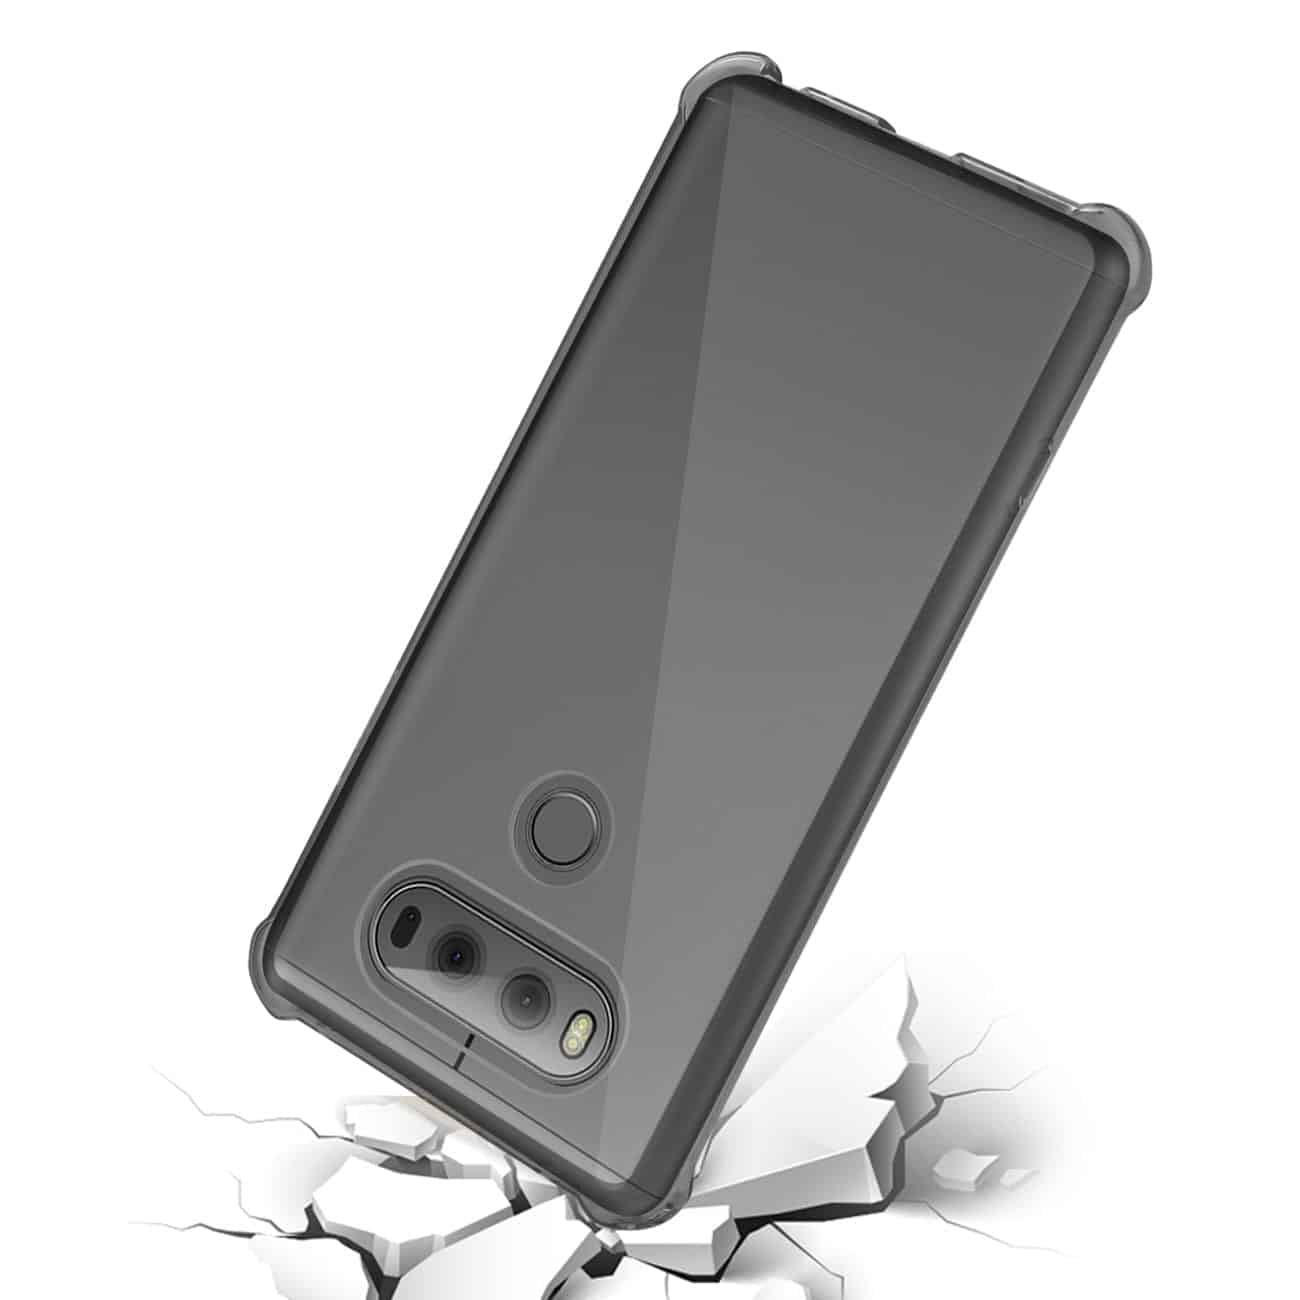 LG V20 5.7 INCHES CLEAR BUMPER CASE WITH AIR CUSHION PROTECTION IN CLEAR BLACK